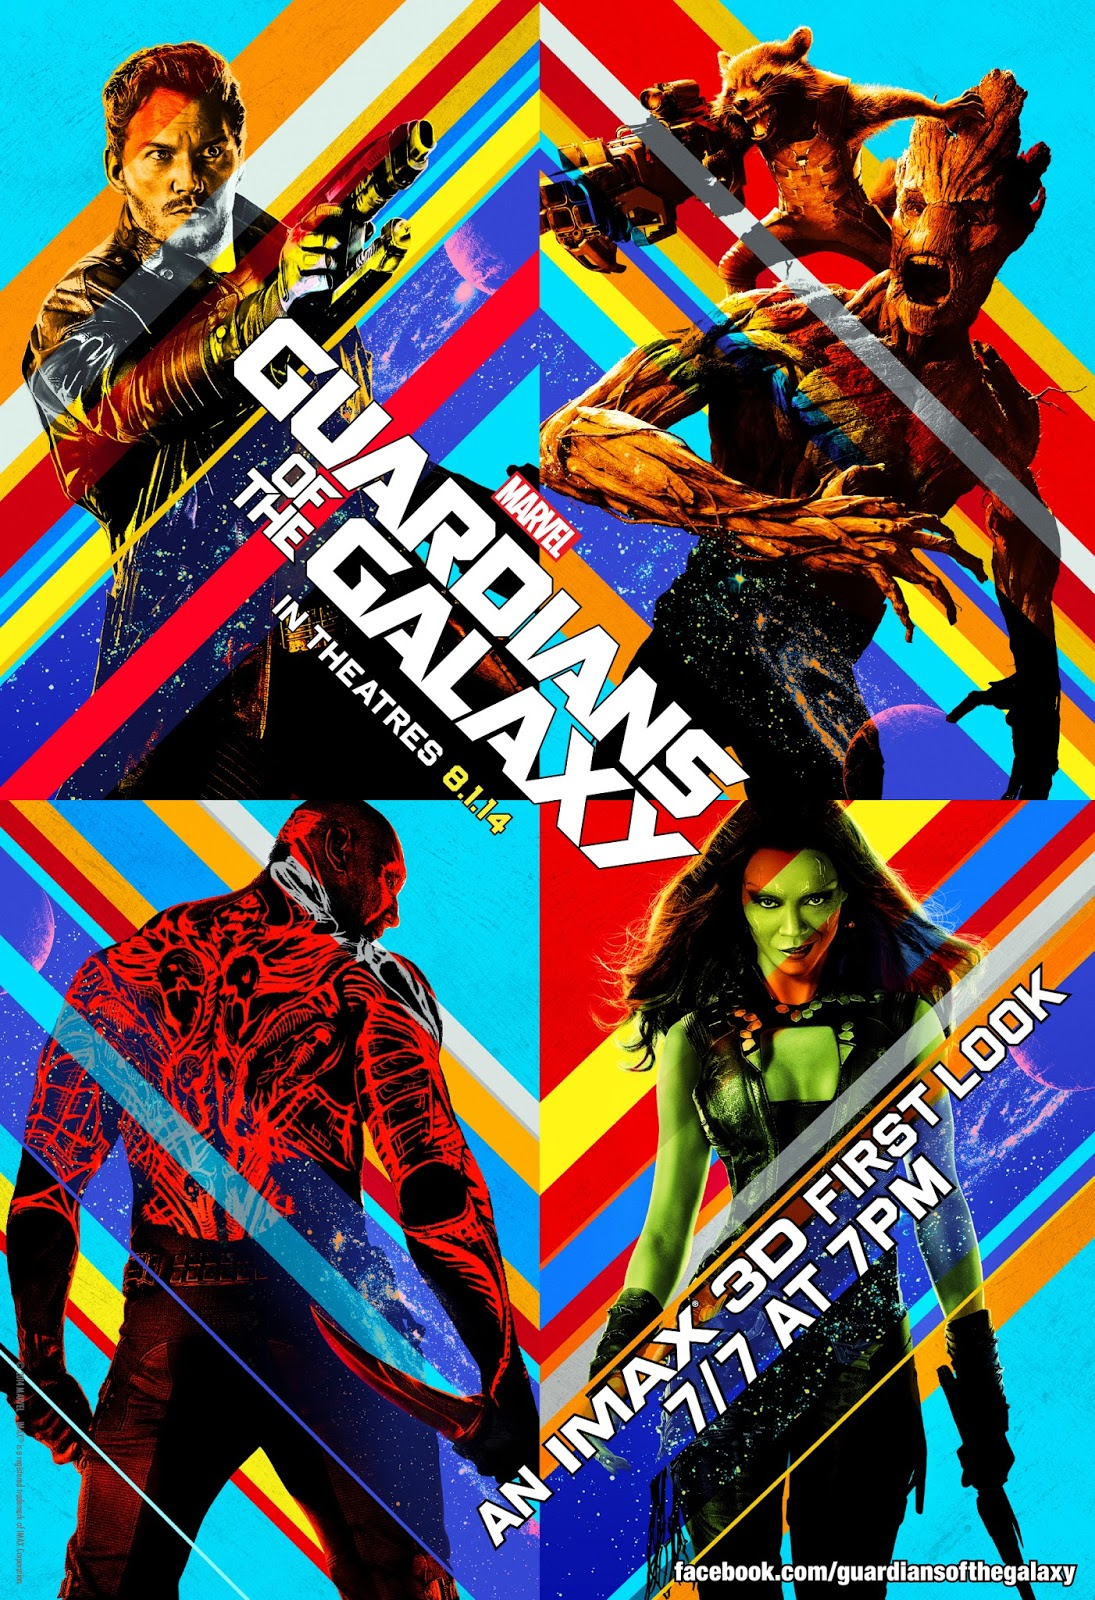 Marvel's Guardian's of the Galaxy IMAX 3D First Look